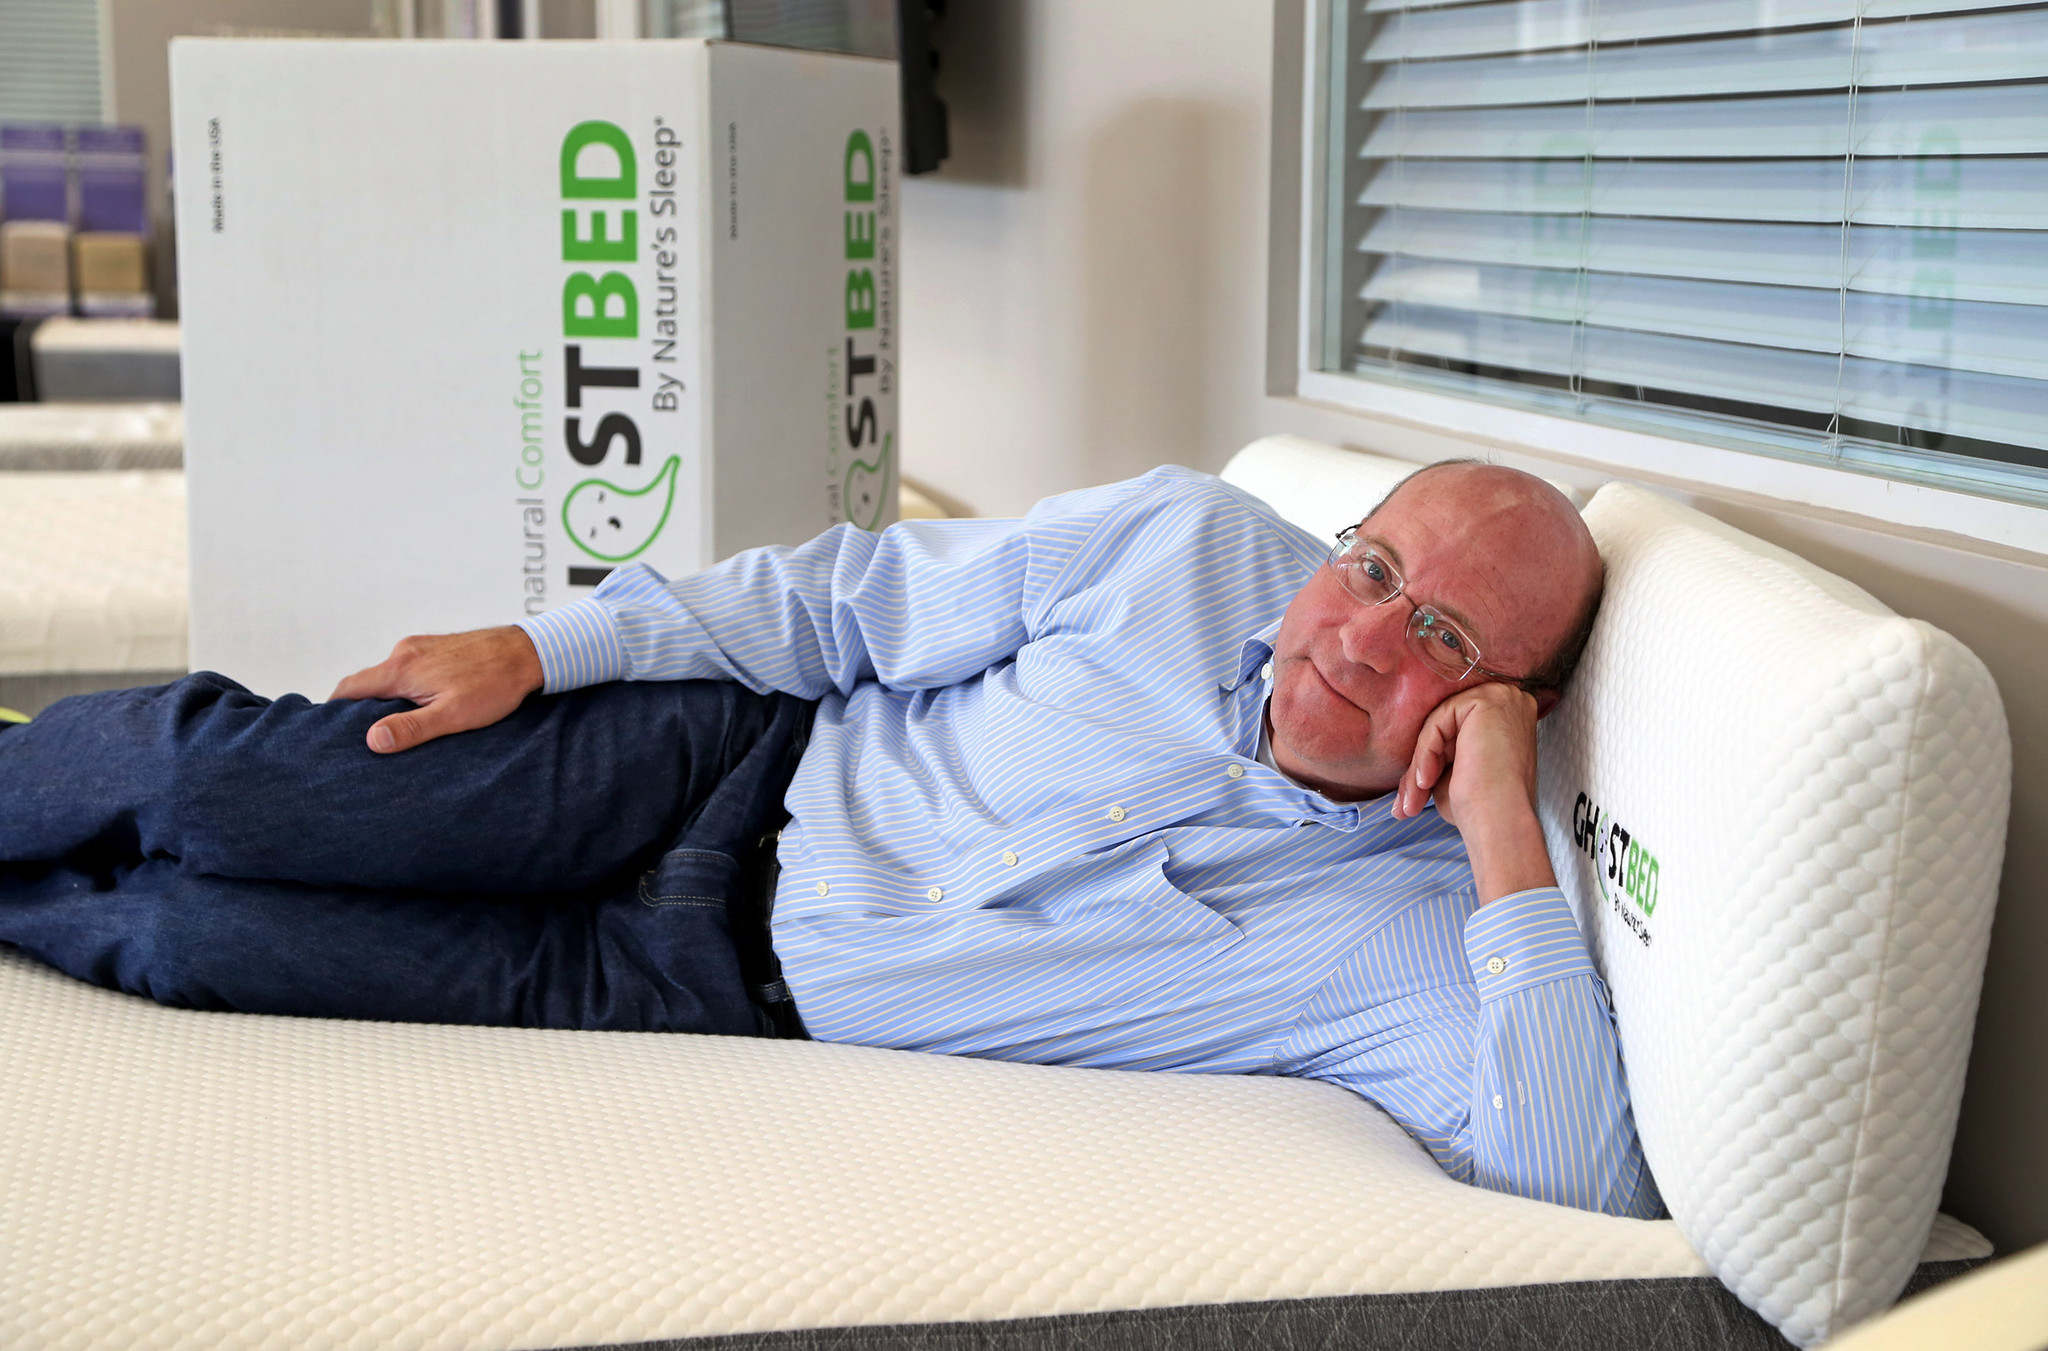 Mattress maker goes after the younger crowd online